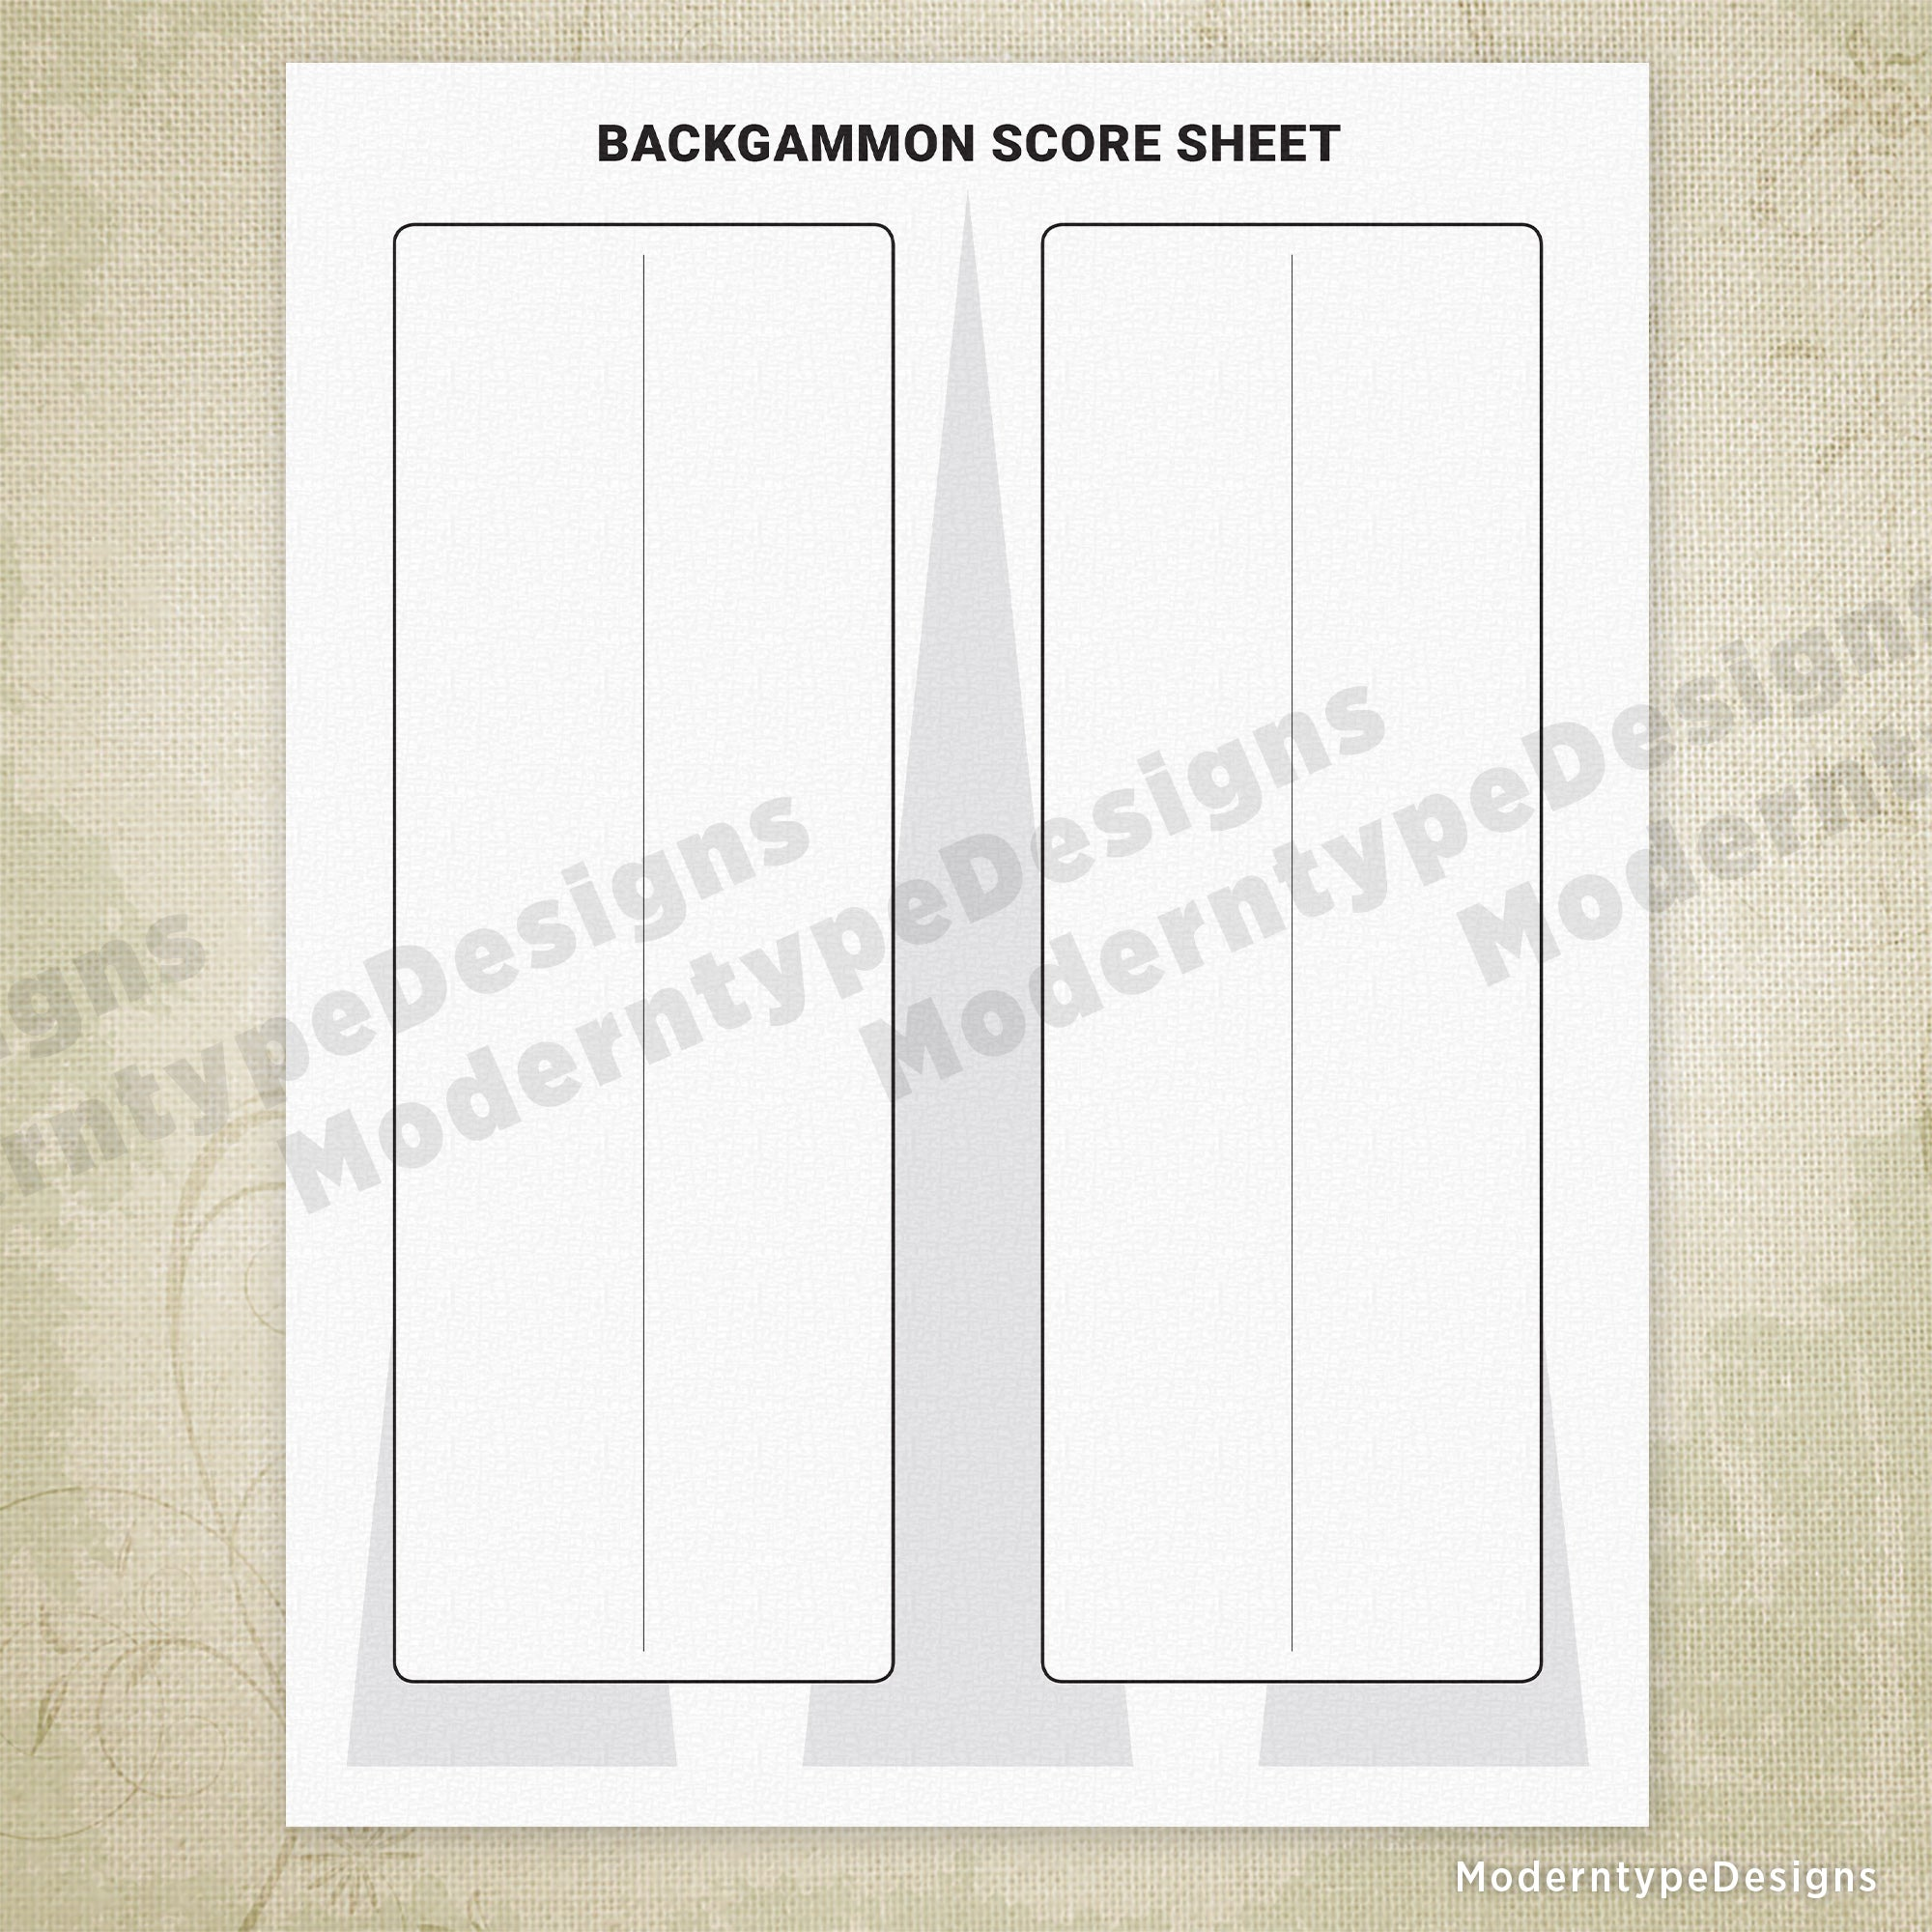 Backgammon Scoring